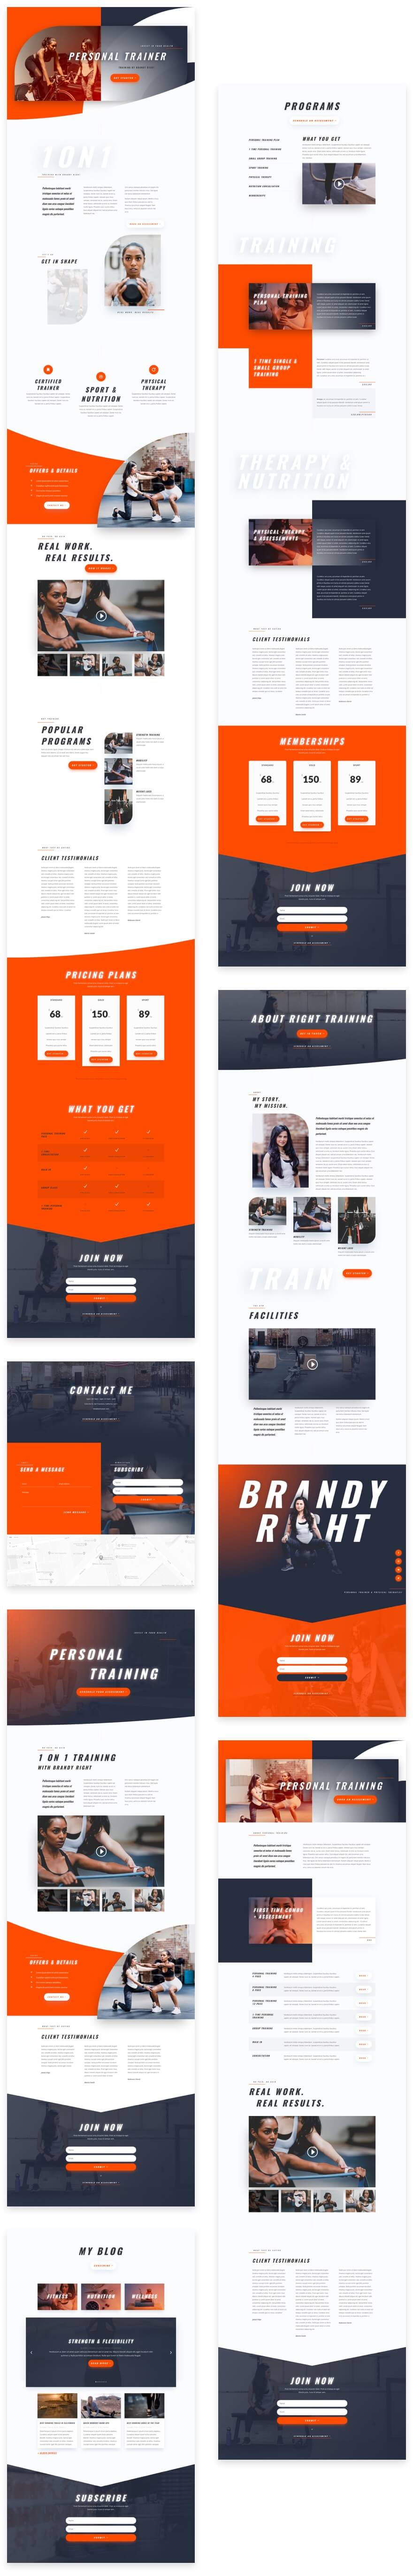 divi personal trainer layout pack grid